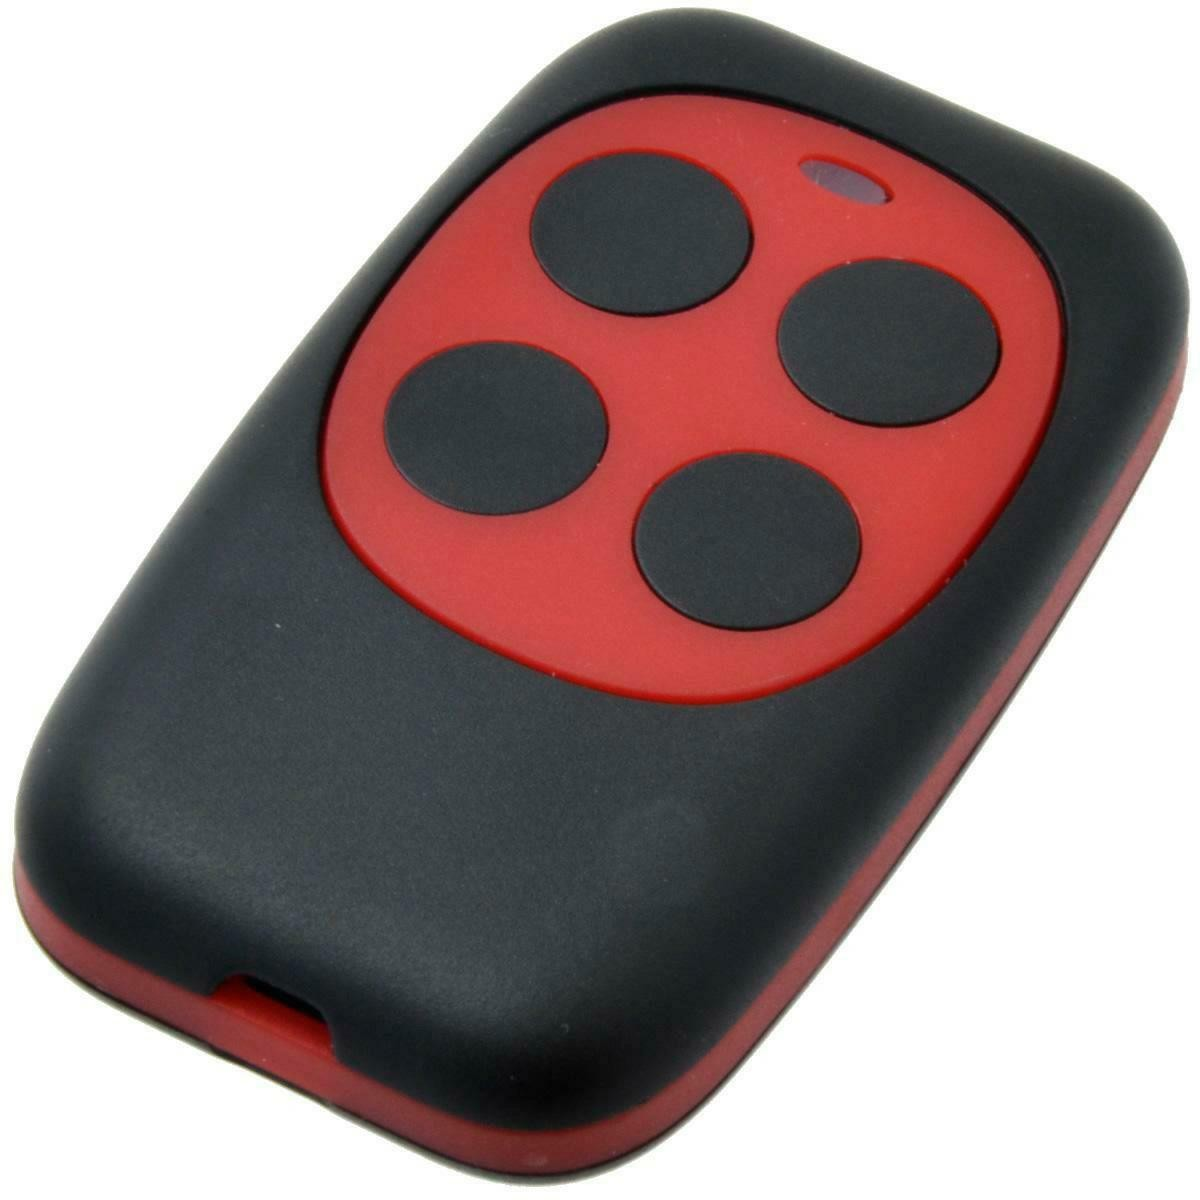 REMOTE FOR NICE SMILO RED